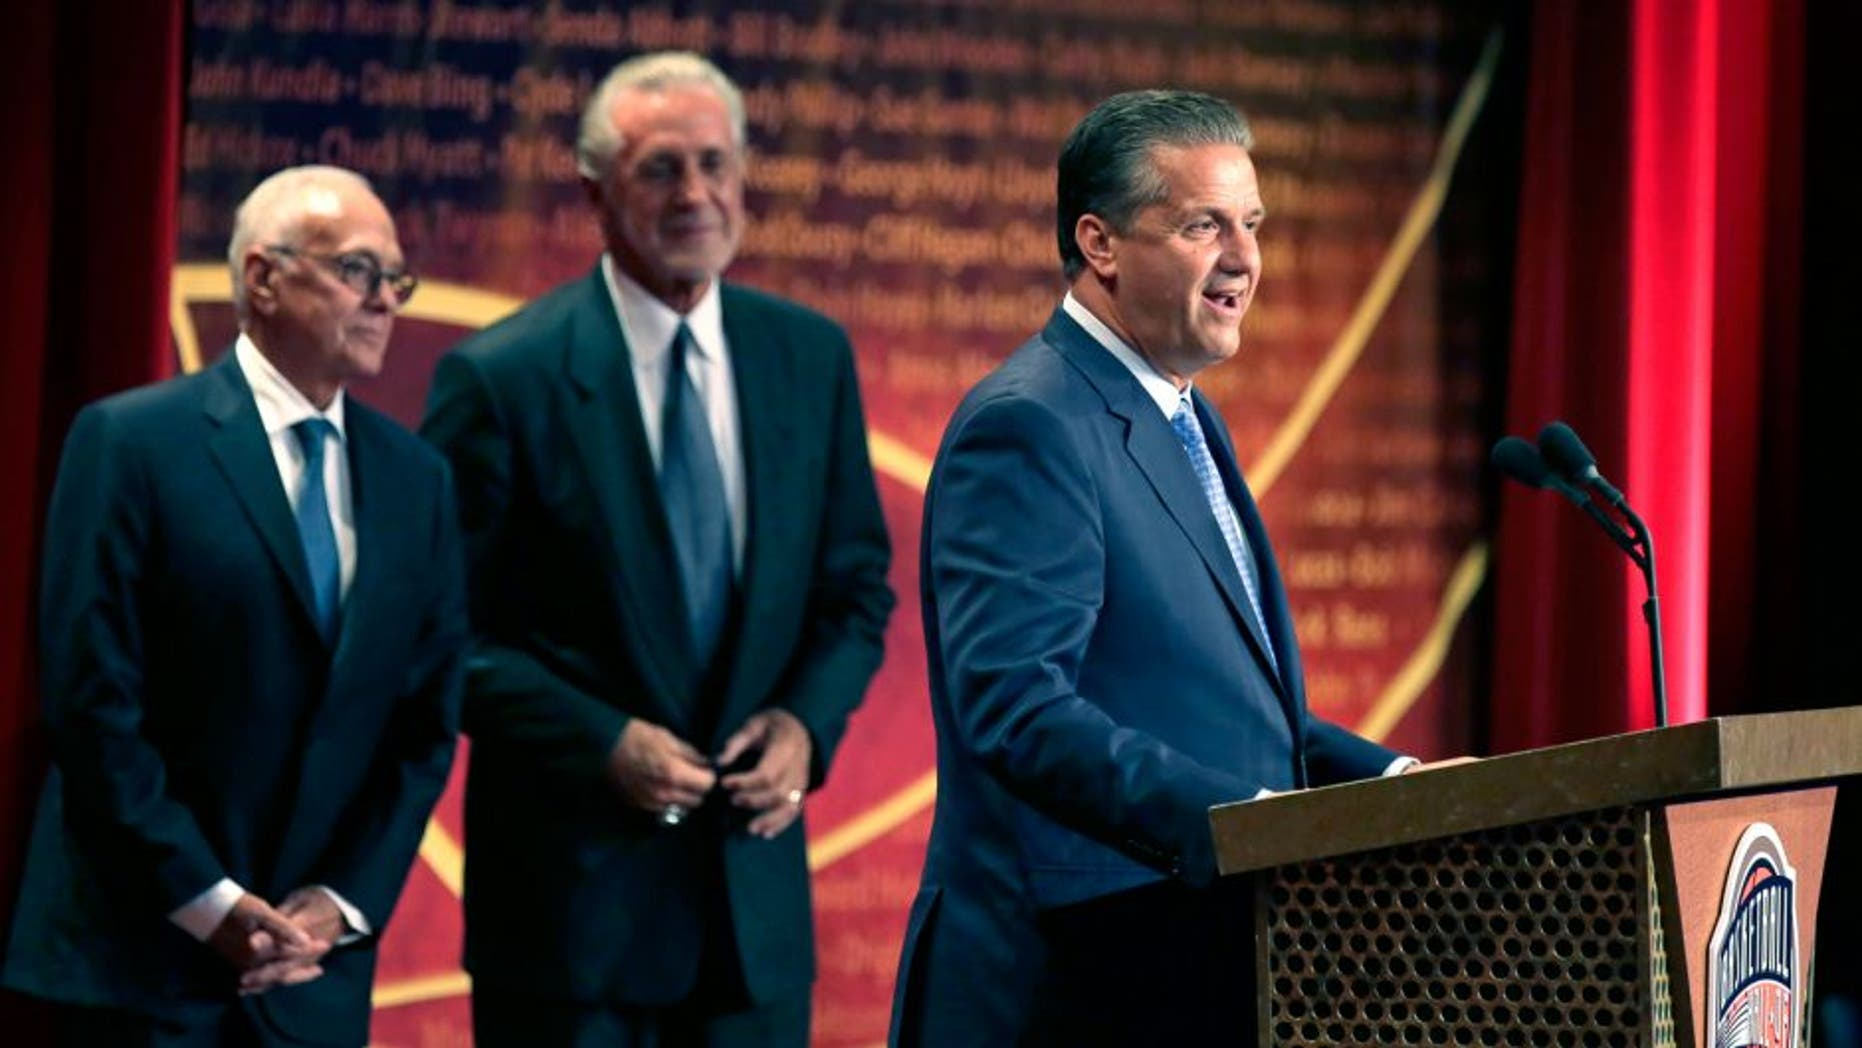 Basketball Hall of Fame inductee coach John Calipari stands with his presenters Larry Brown, left, and Pat Riley during the enshrinement ceremony for the Class of 2015 of the Naismith Memorial Basketball Hall of Fame in Springfield, Mass., Friday, Sept. 11, 2015. (AP Photo/Charles Krupa)